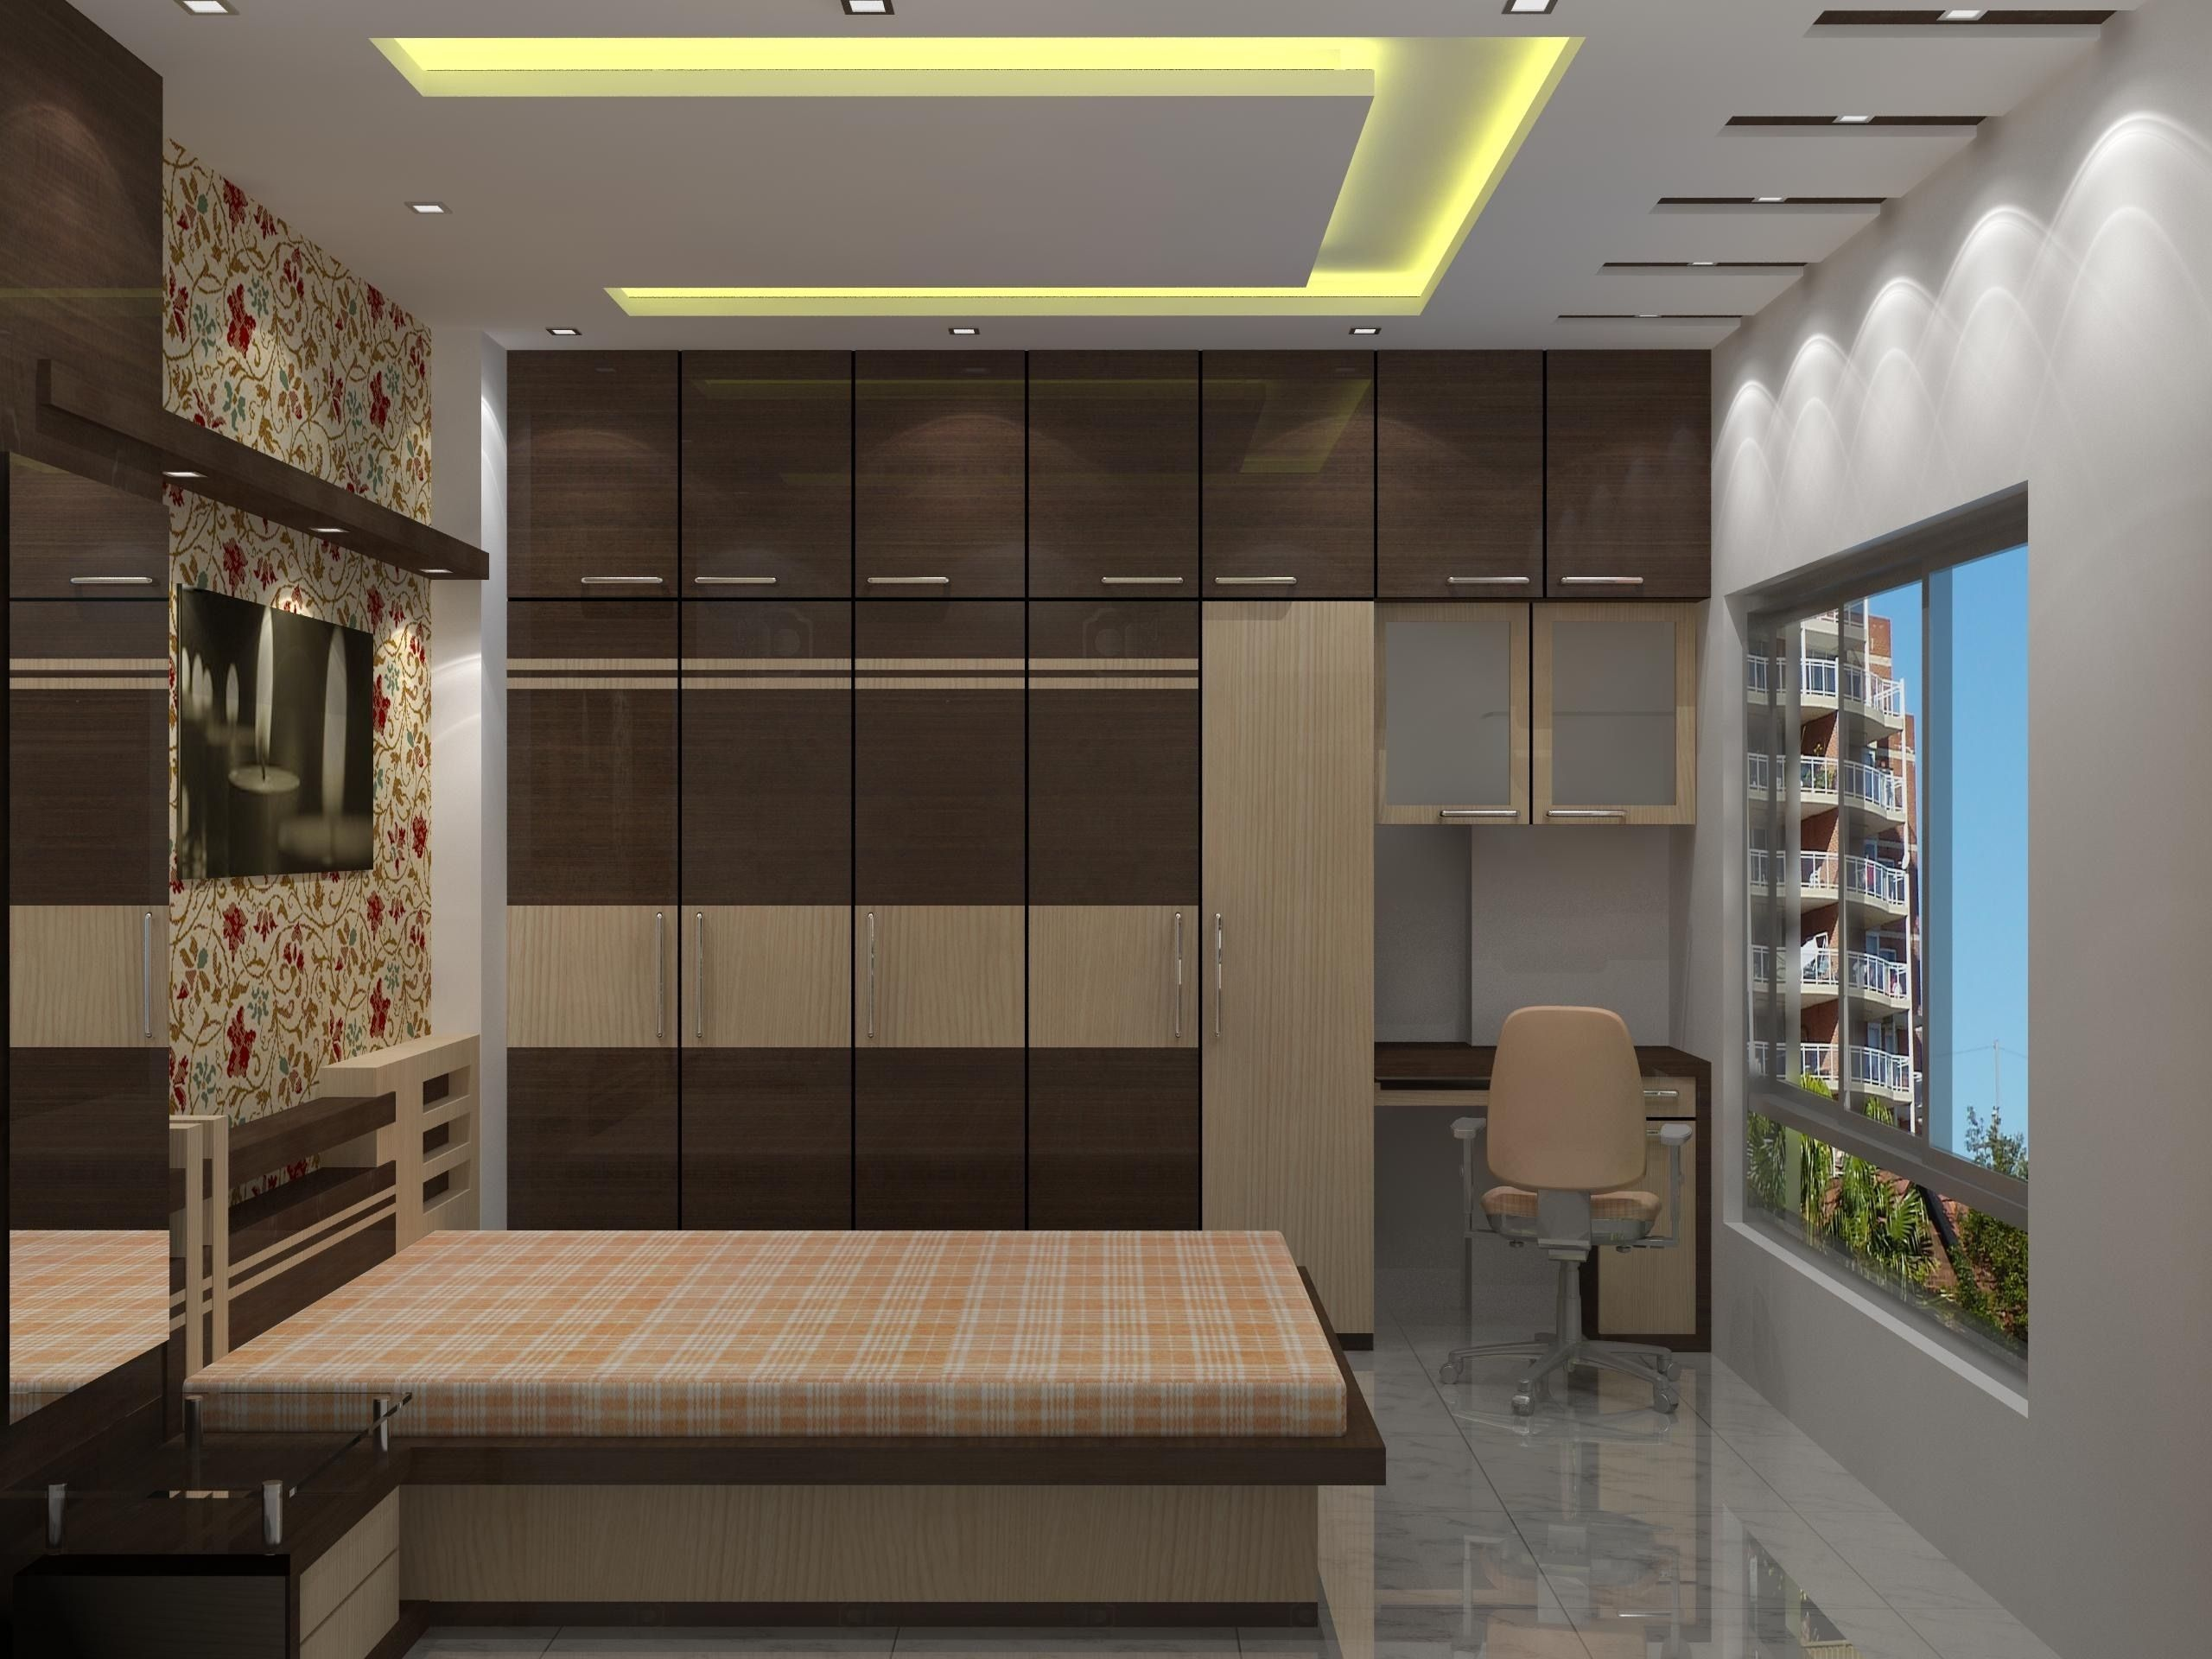 Simple False Ceiling Designs For Small Bedrooms In 2019